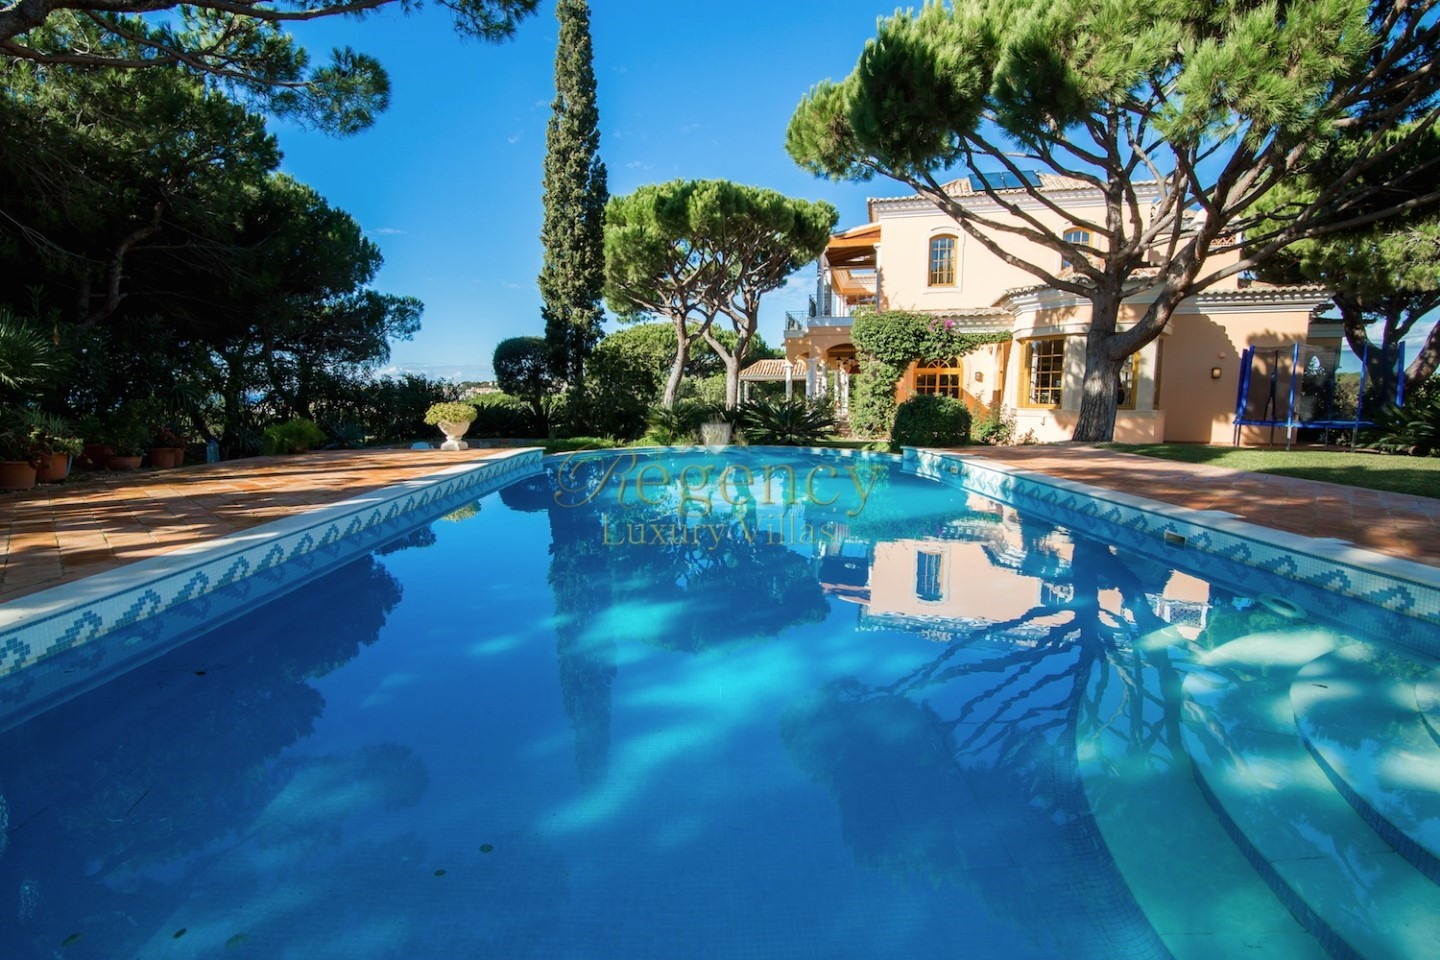 Luxury Elegant Villa With 4 Beds To Rent In Vale Do Lobo 1